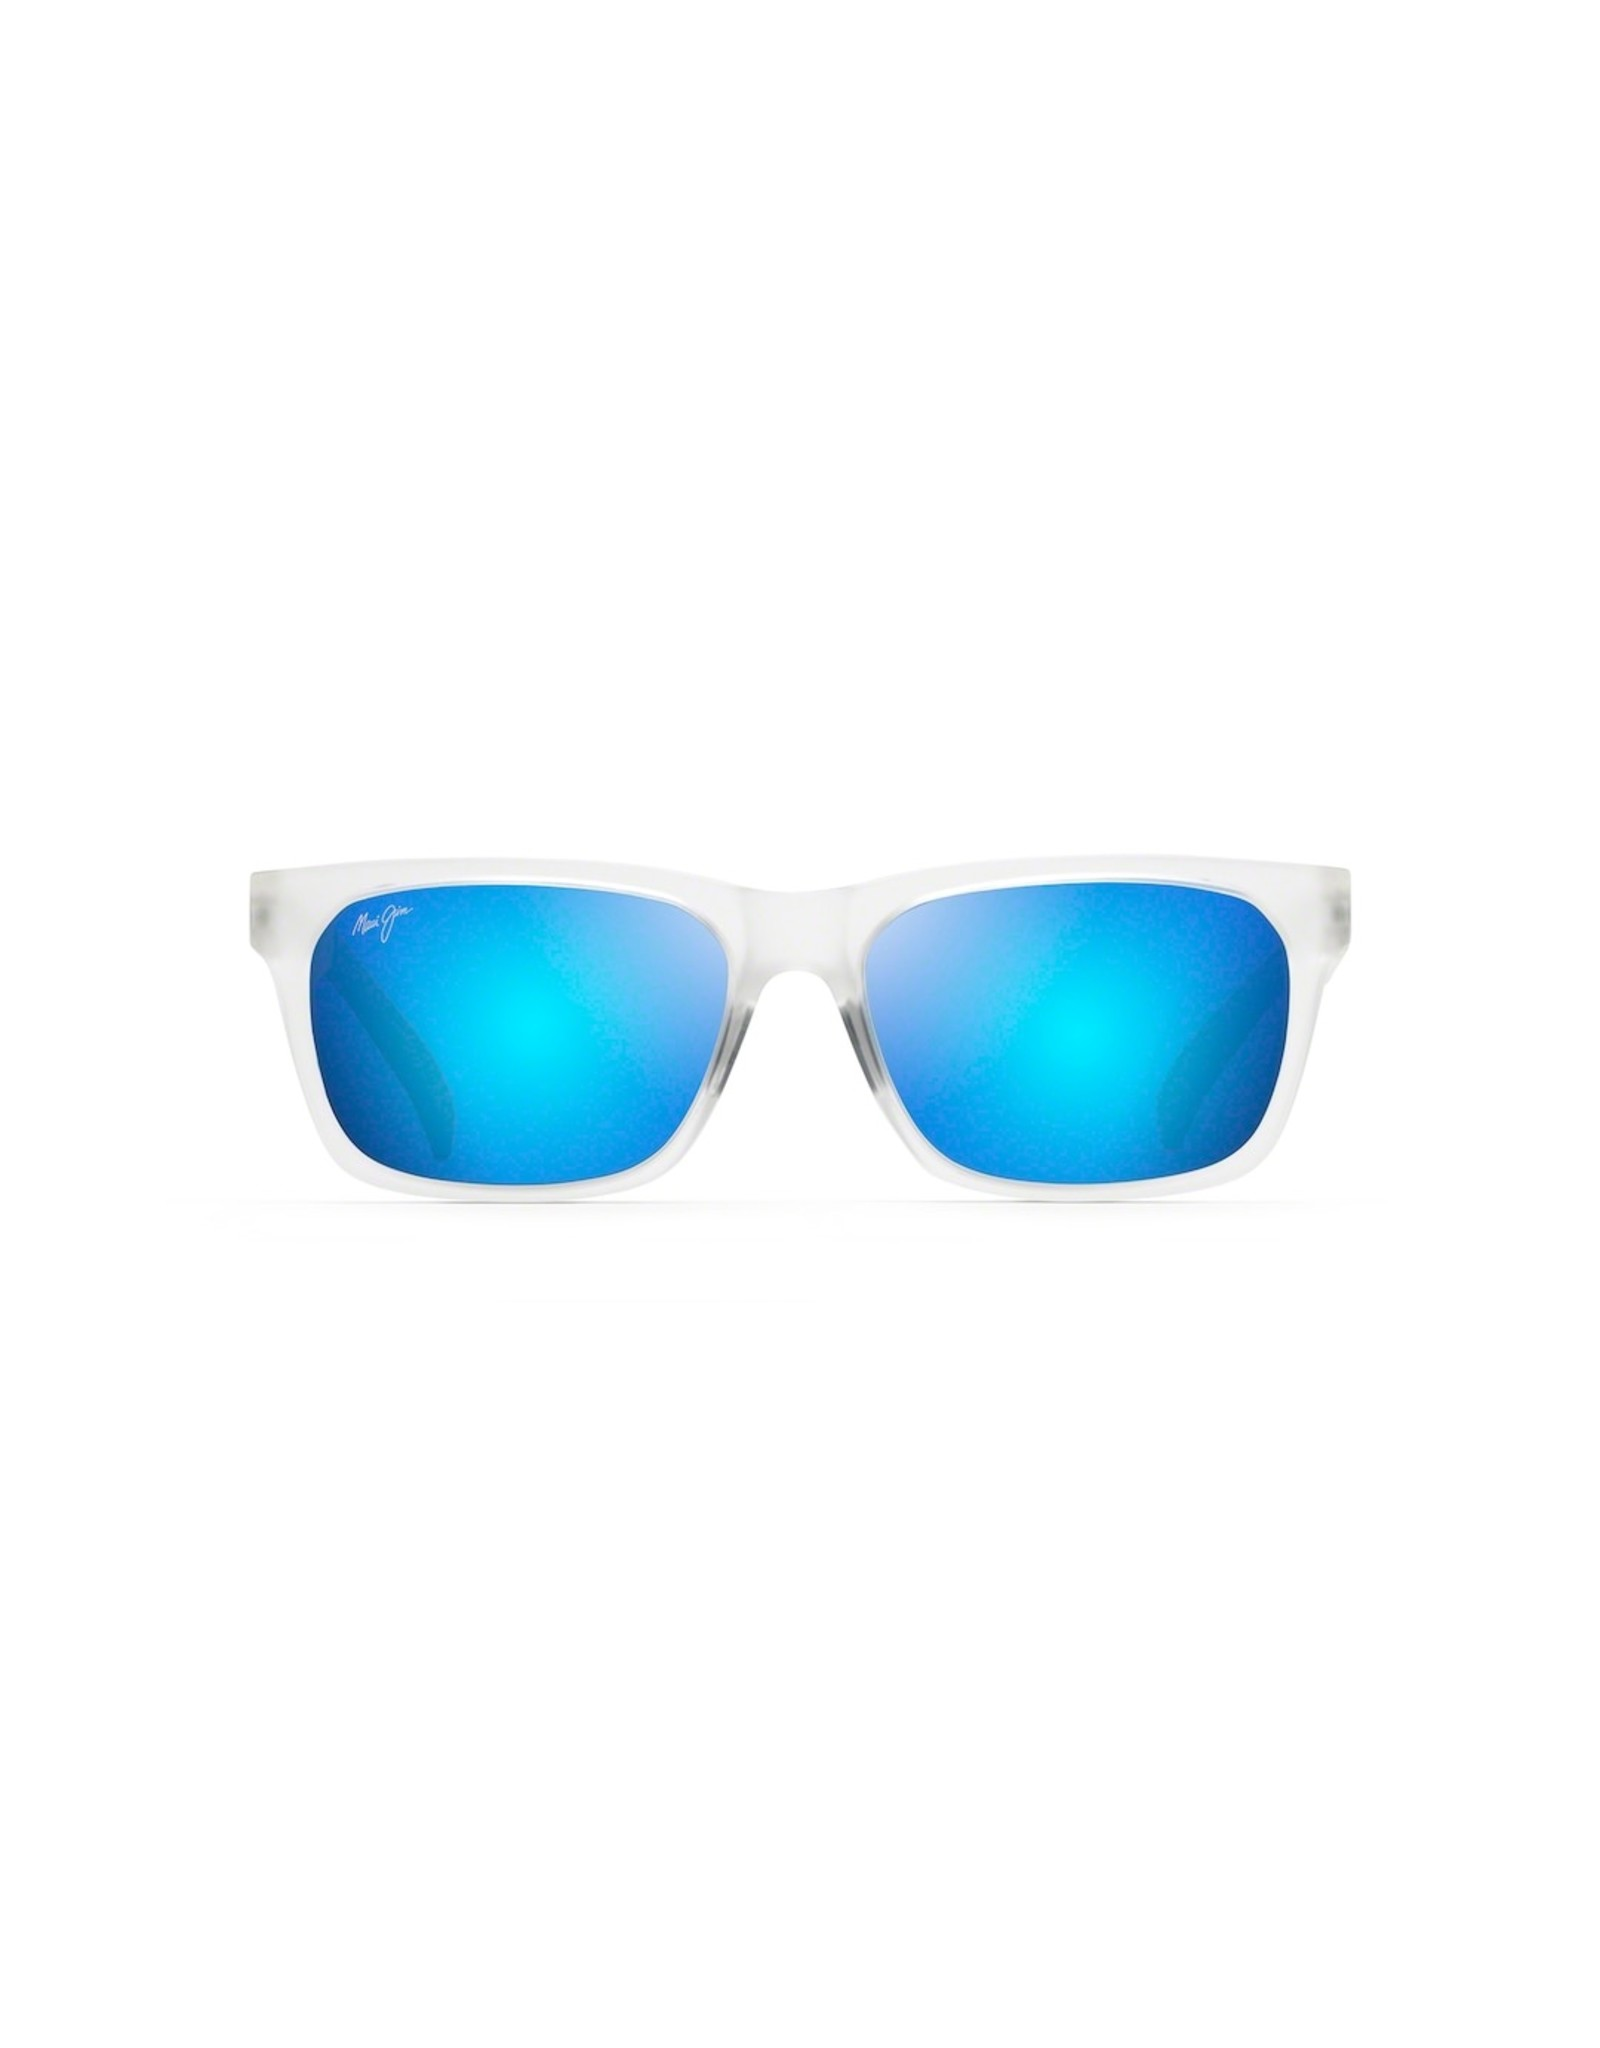 Maui Jim Maui Jim 'Boardwalk' Sunglasses